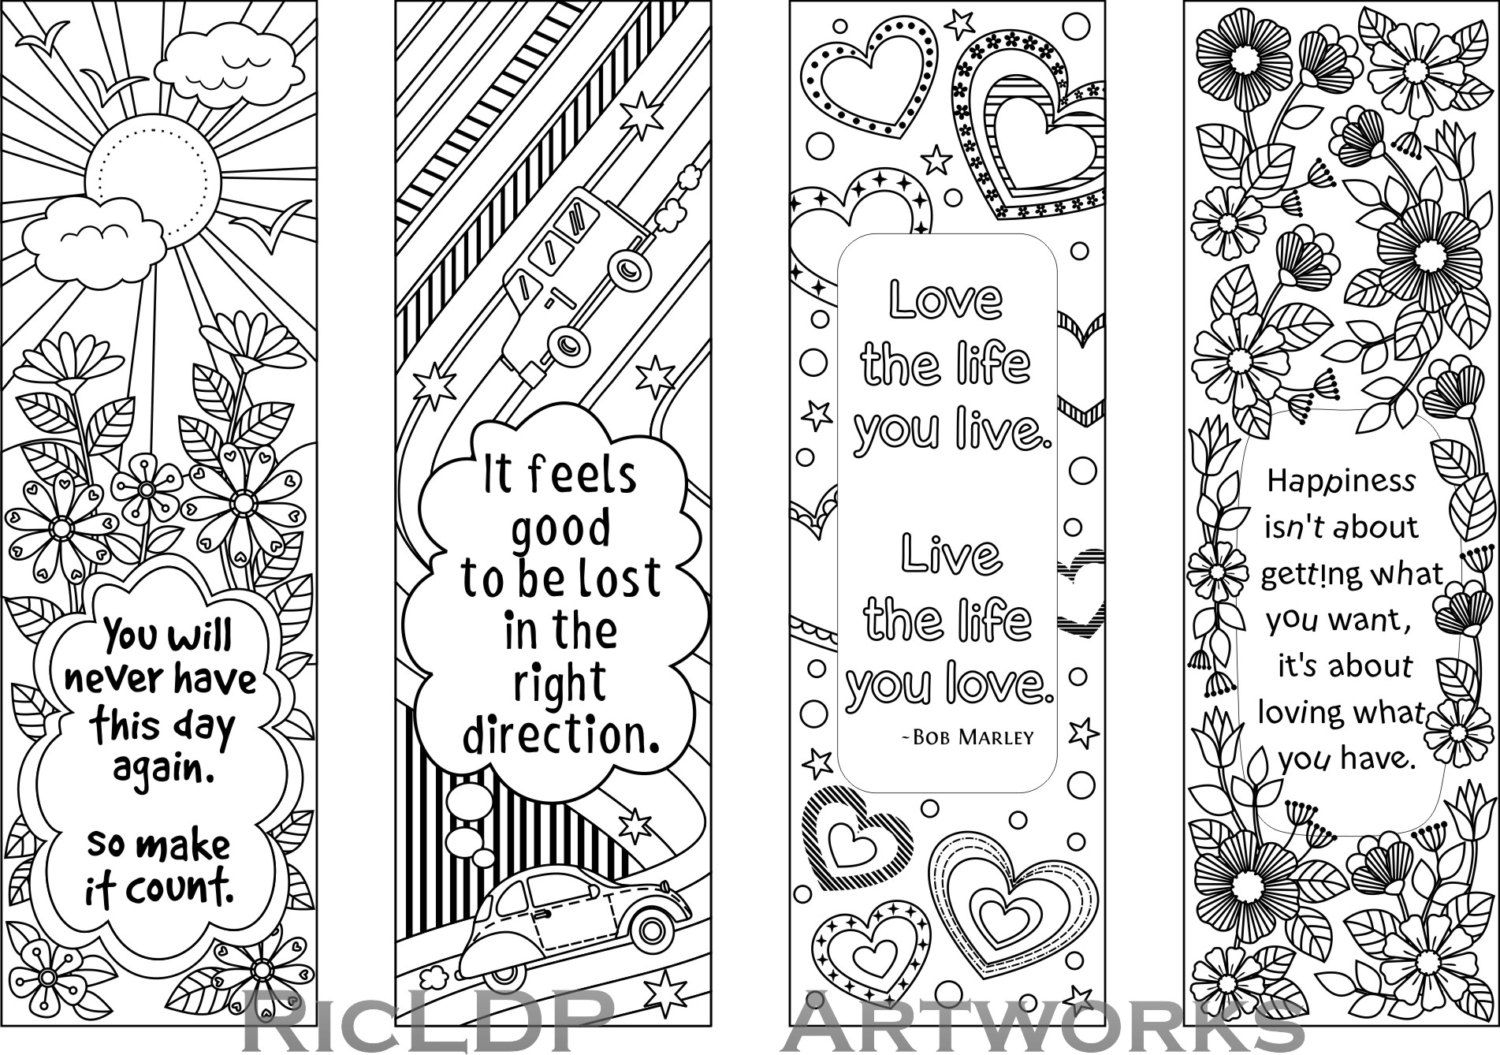 Set Of 4 Coloring Bookmarks With Quotes, Bookmark Templates With - Free Printable Bookmarks Templates